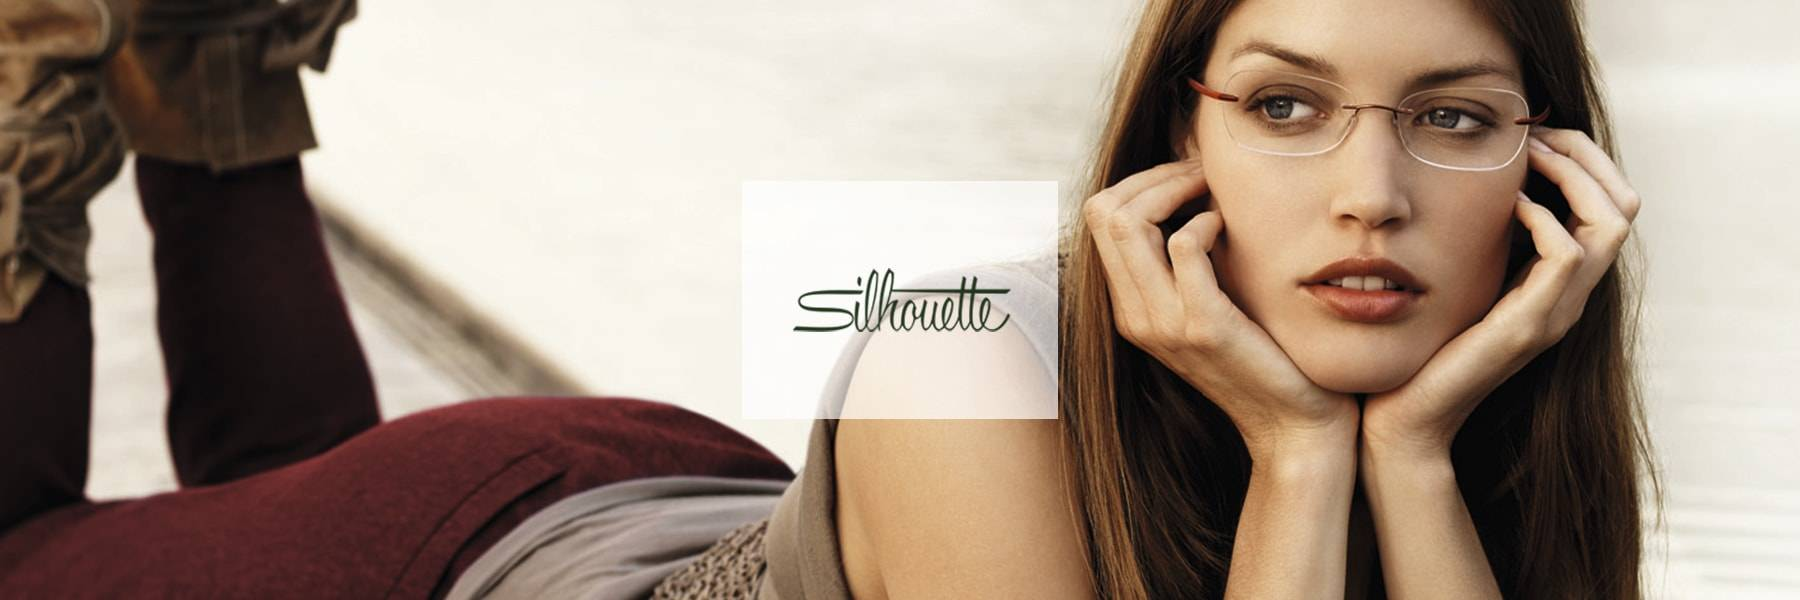 Silhouette-banner-image-1800x600-min